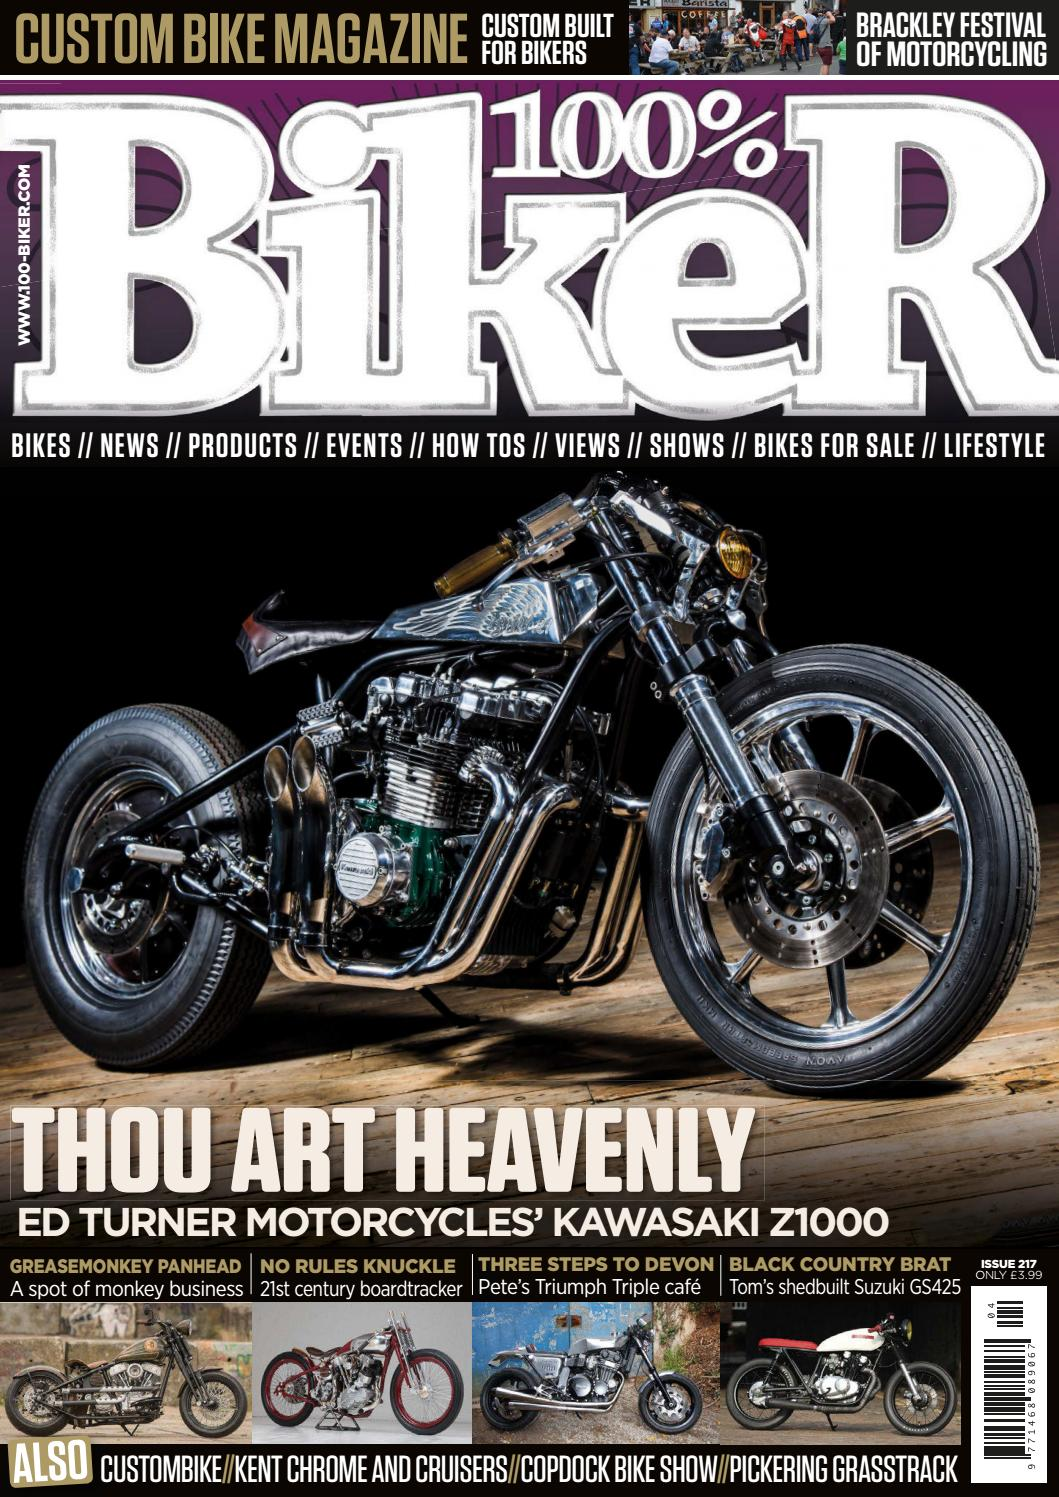 100 B I Ker Issue 217 2017 P2p By Dfvdfvdvf